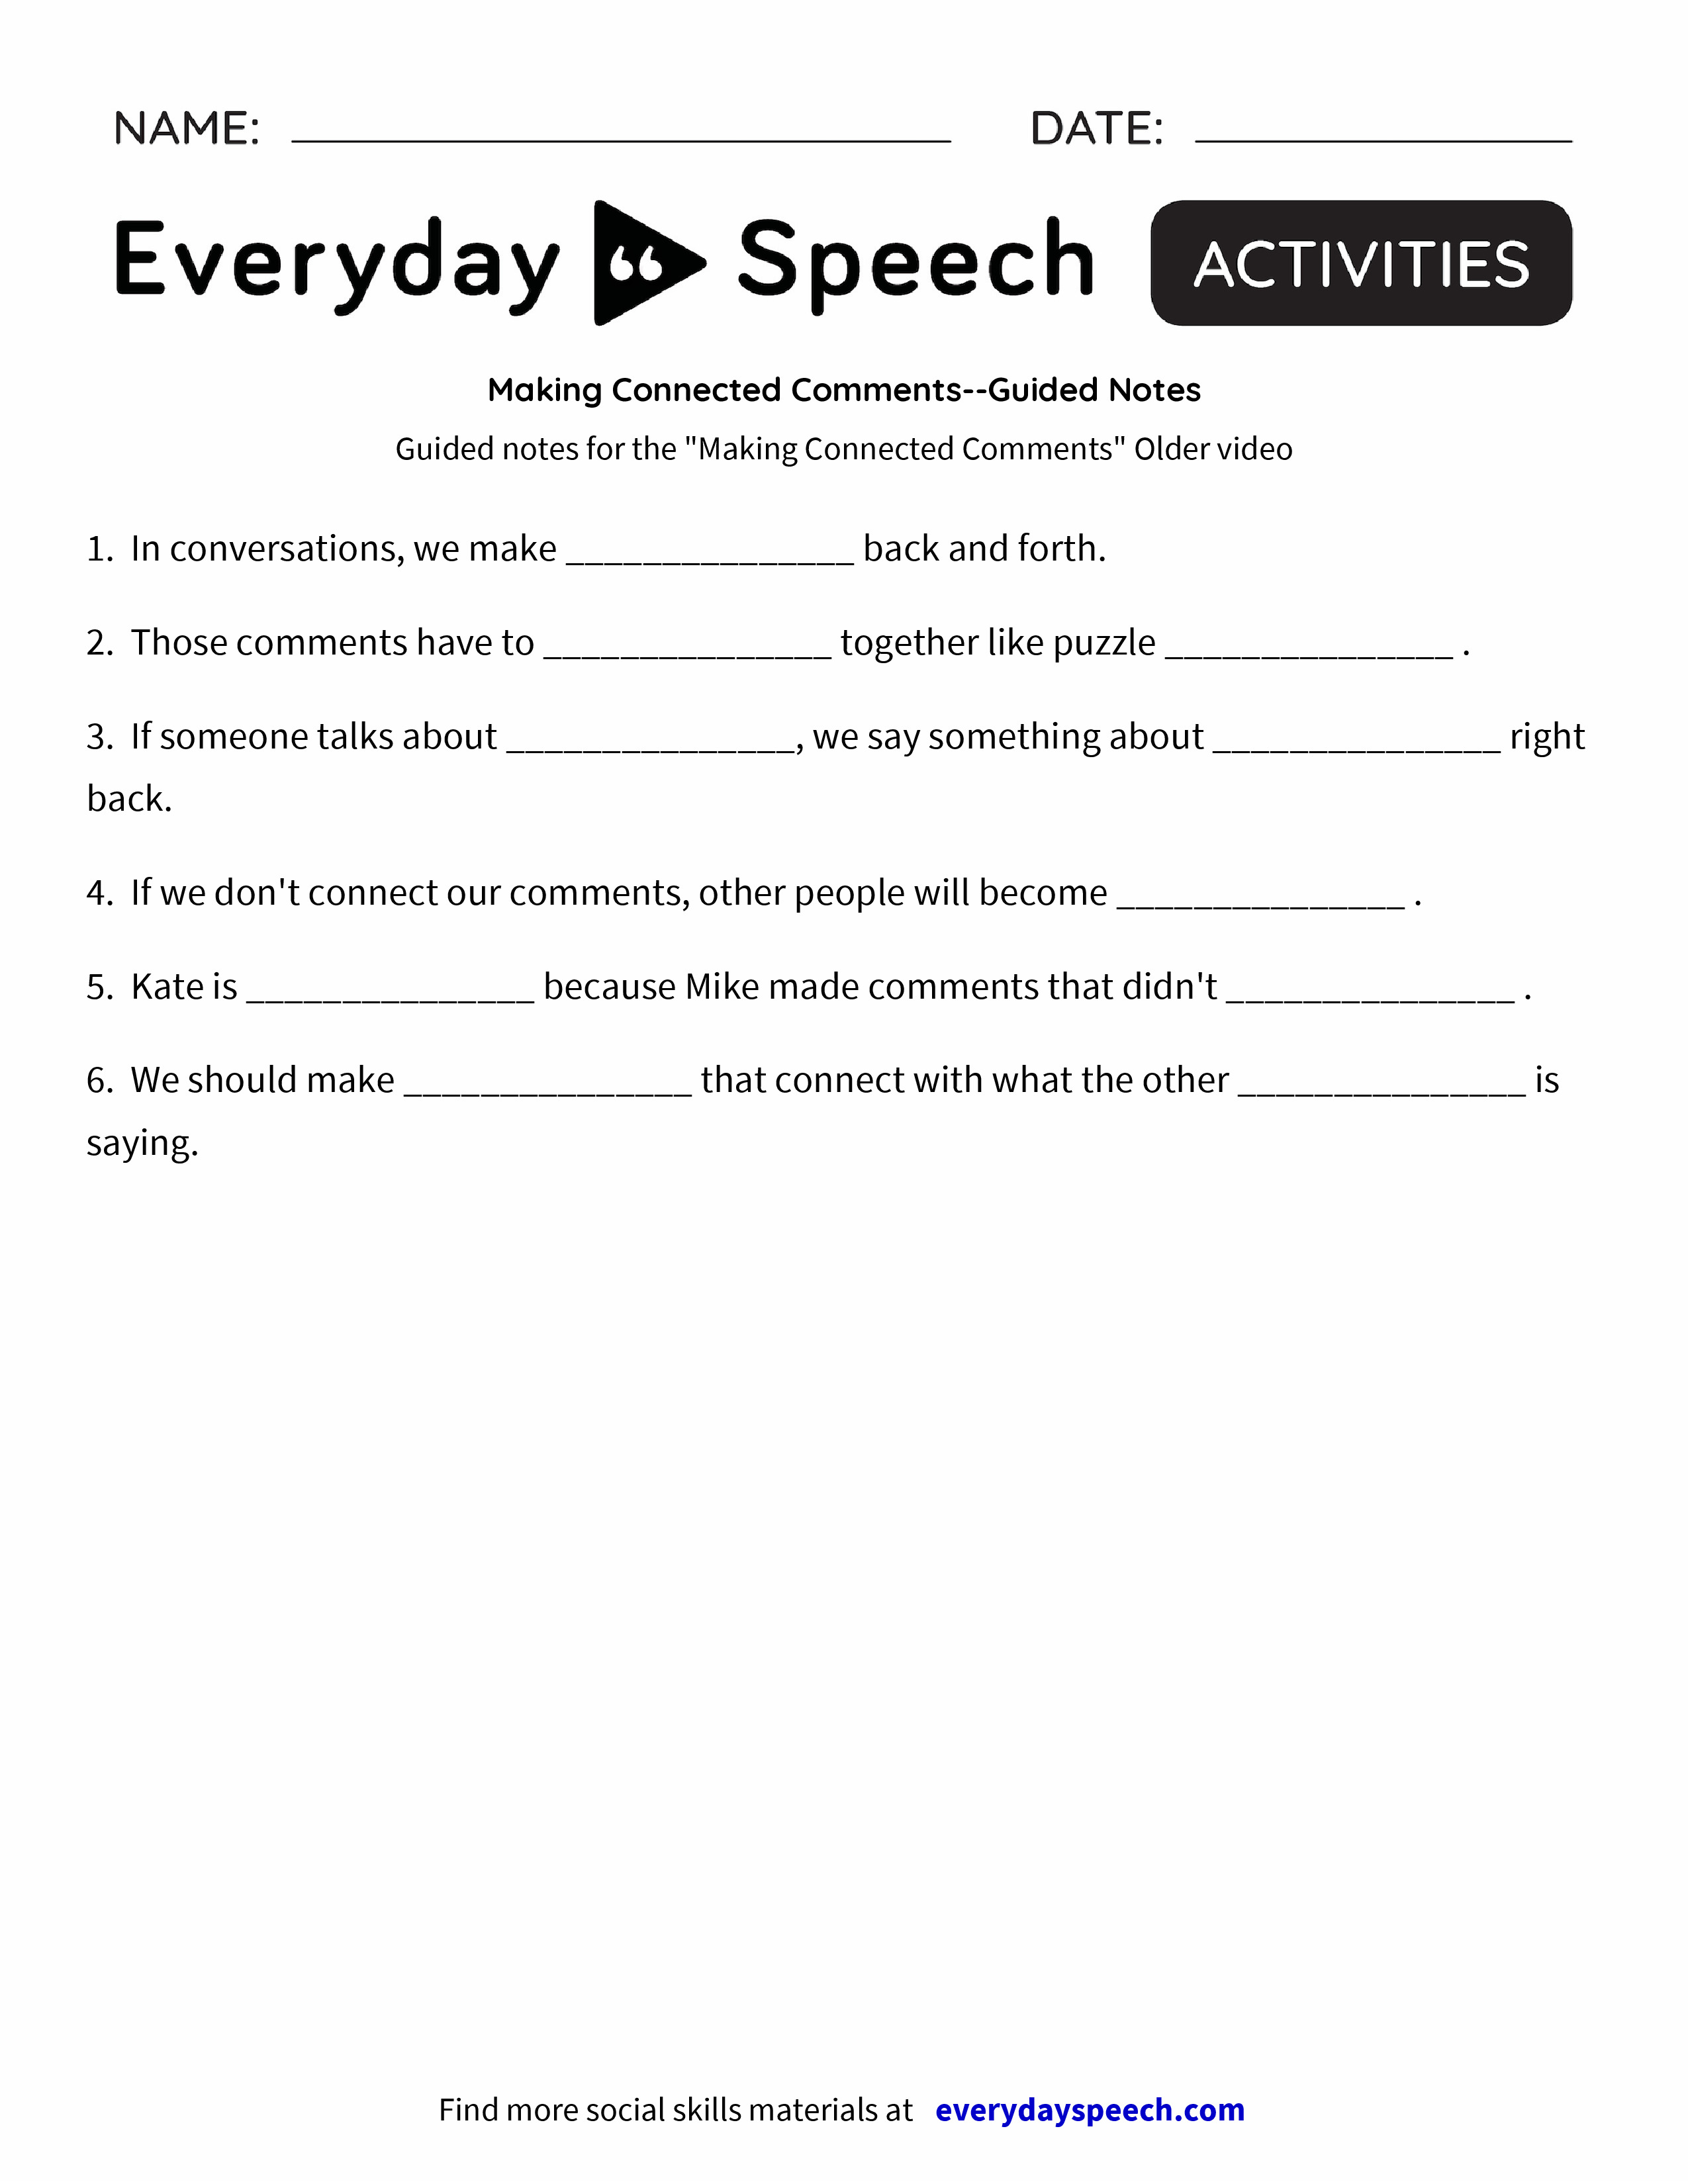 Making Connected Comments-Guided Notes - Everyday Speech - Everyday ...